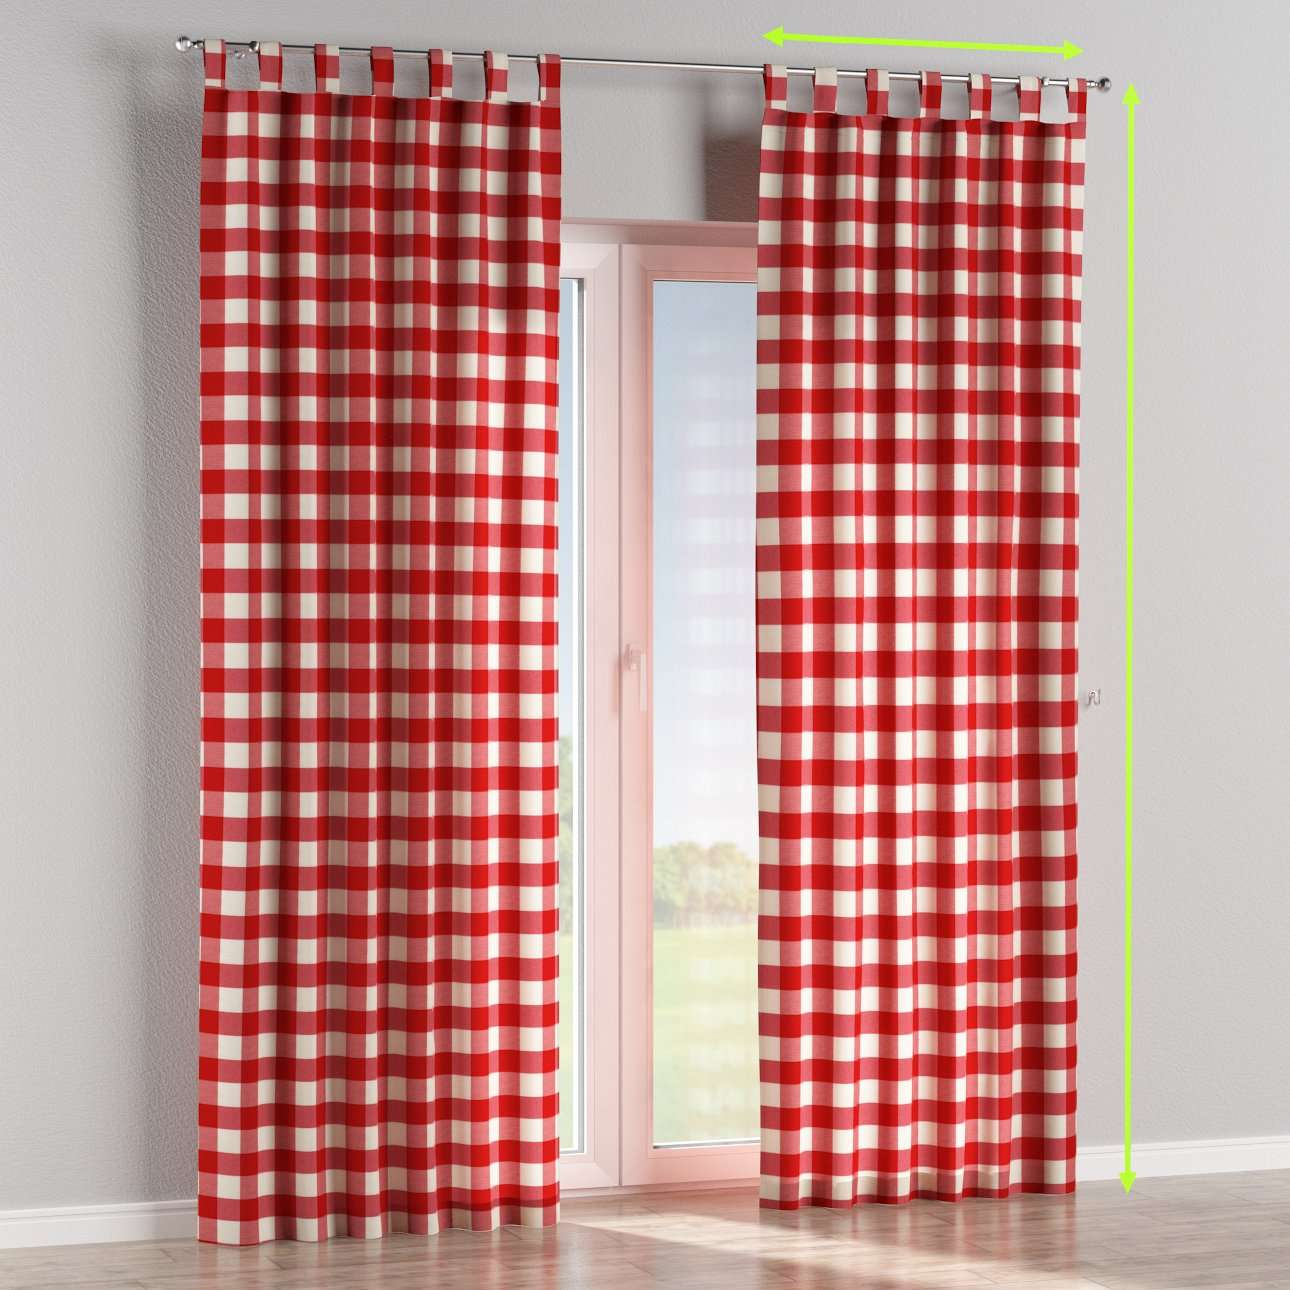 Tab top curtains in collection Quadro, fabric: 136-18